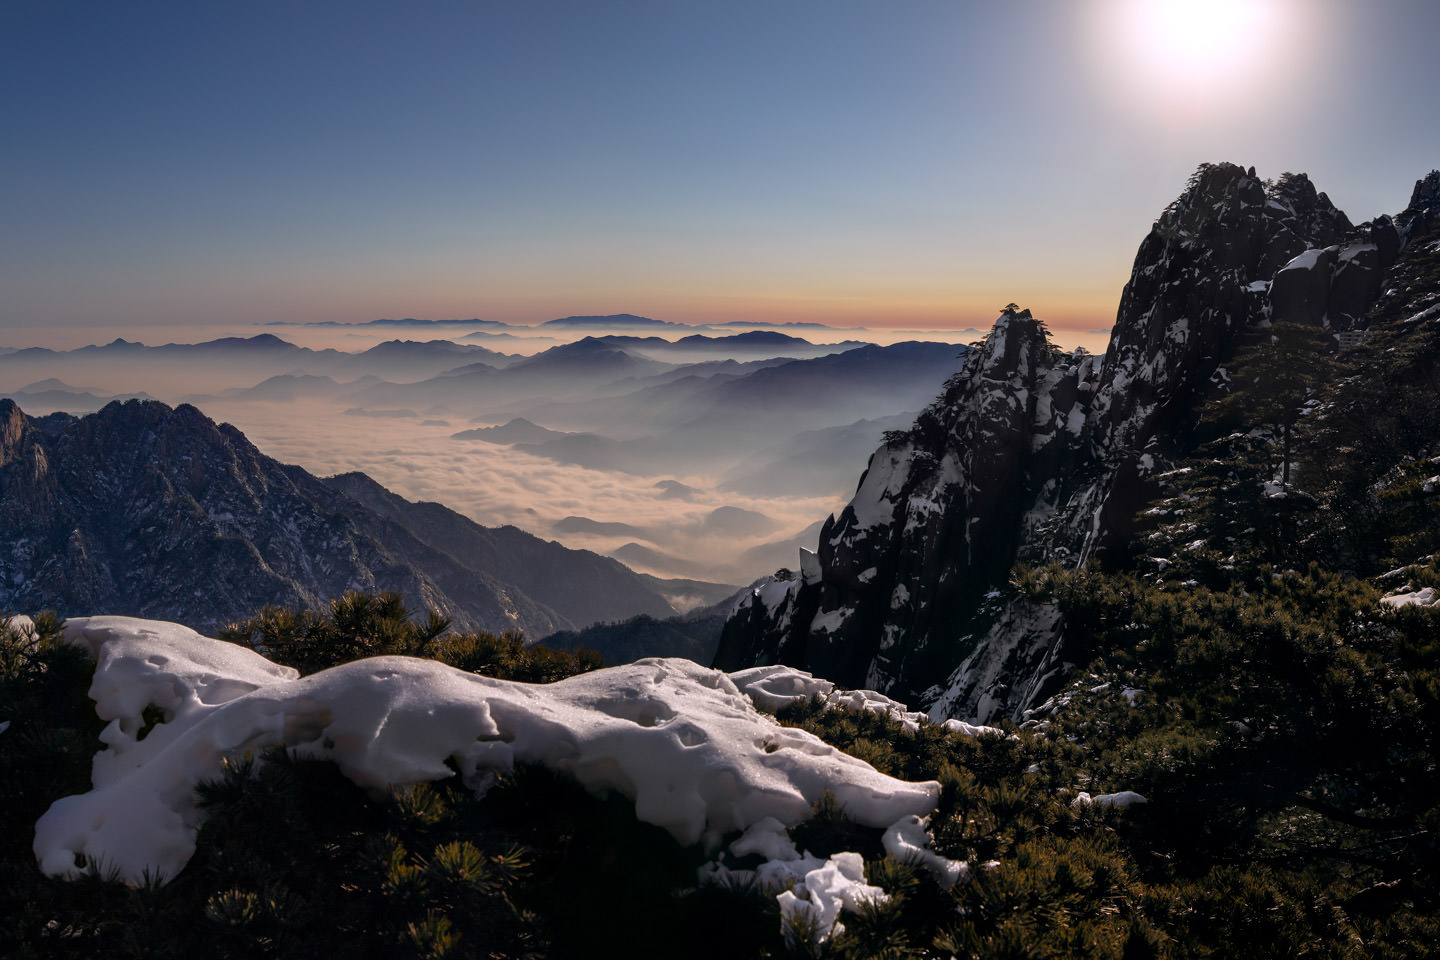 The sun rises over snow-topped peaks and the sea of clouds near Bright Peak